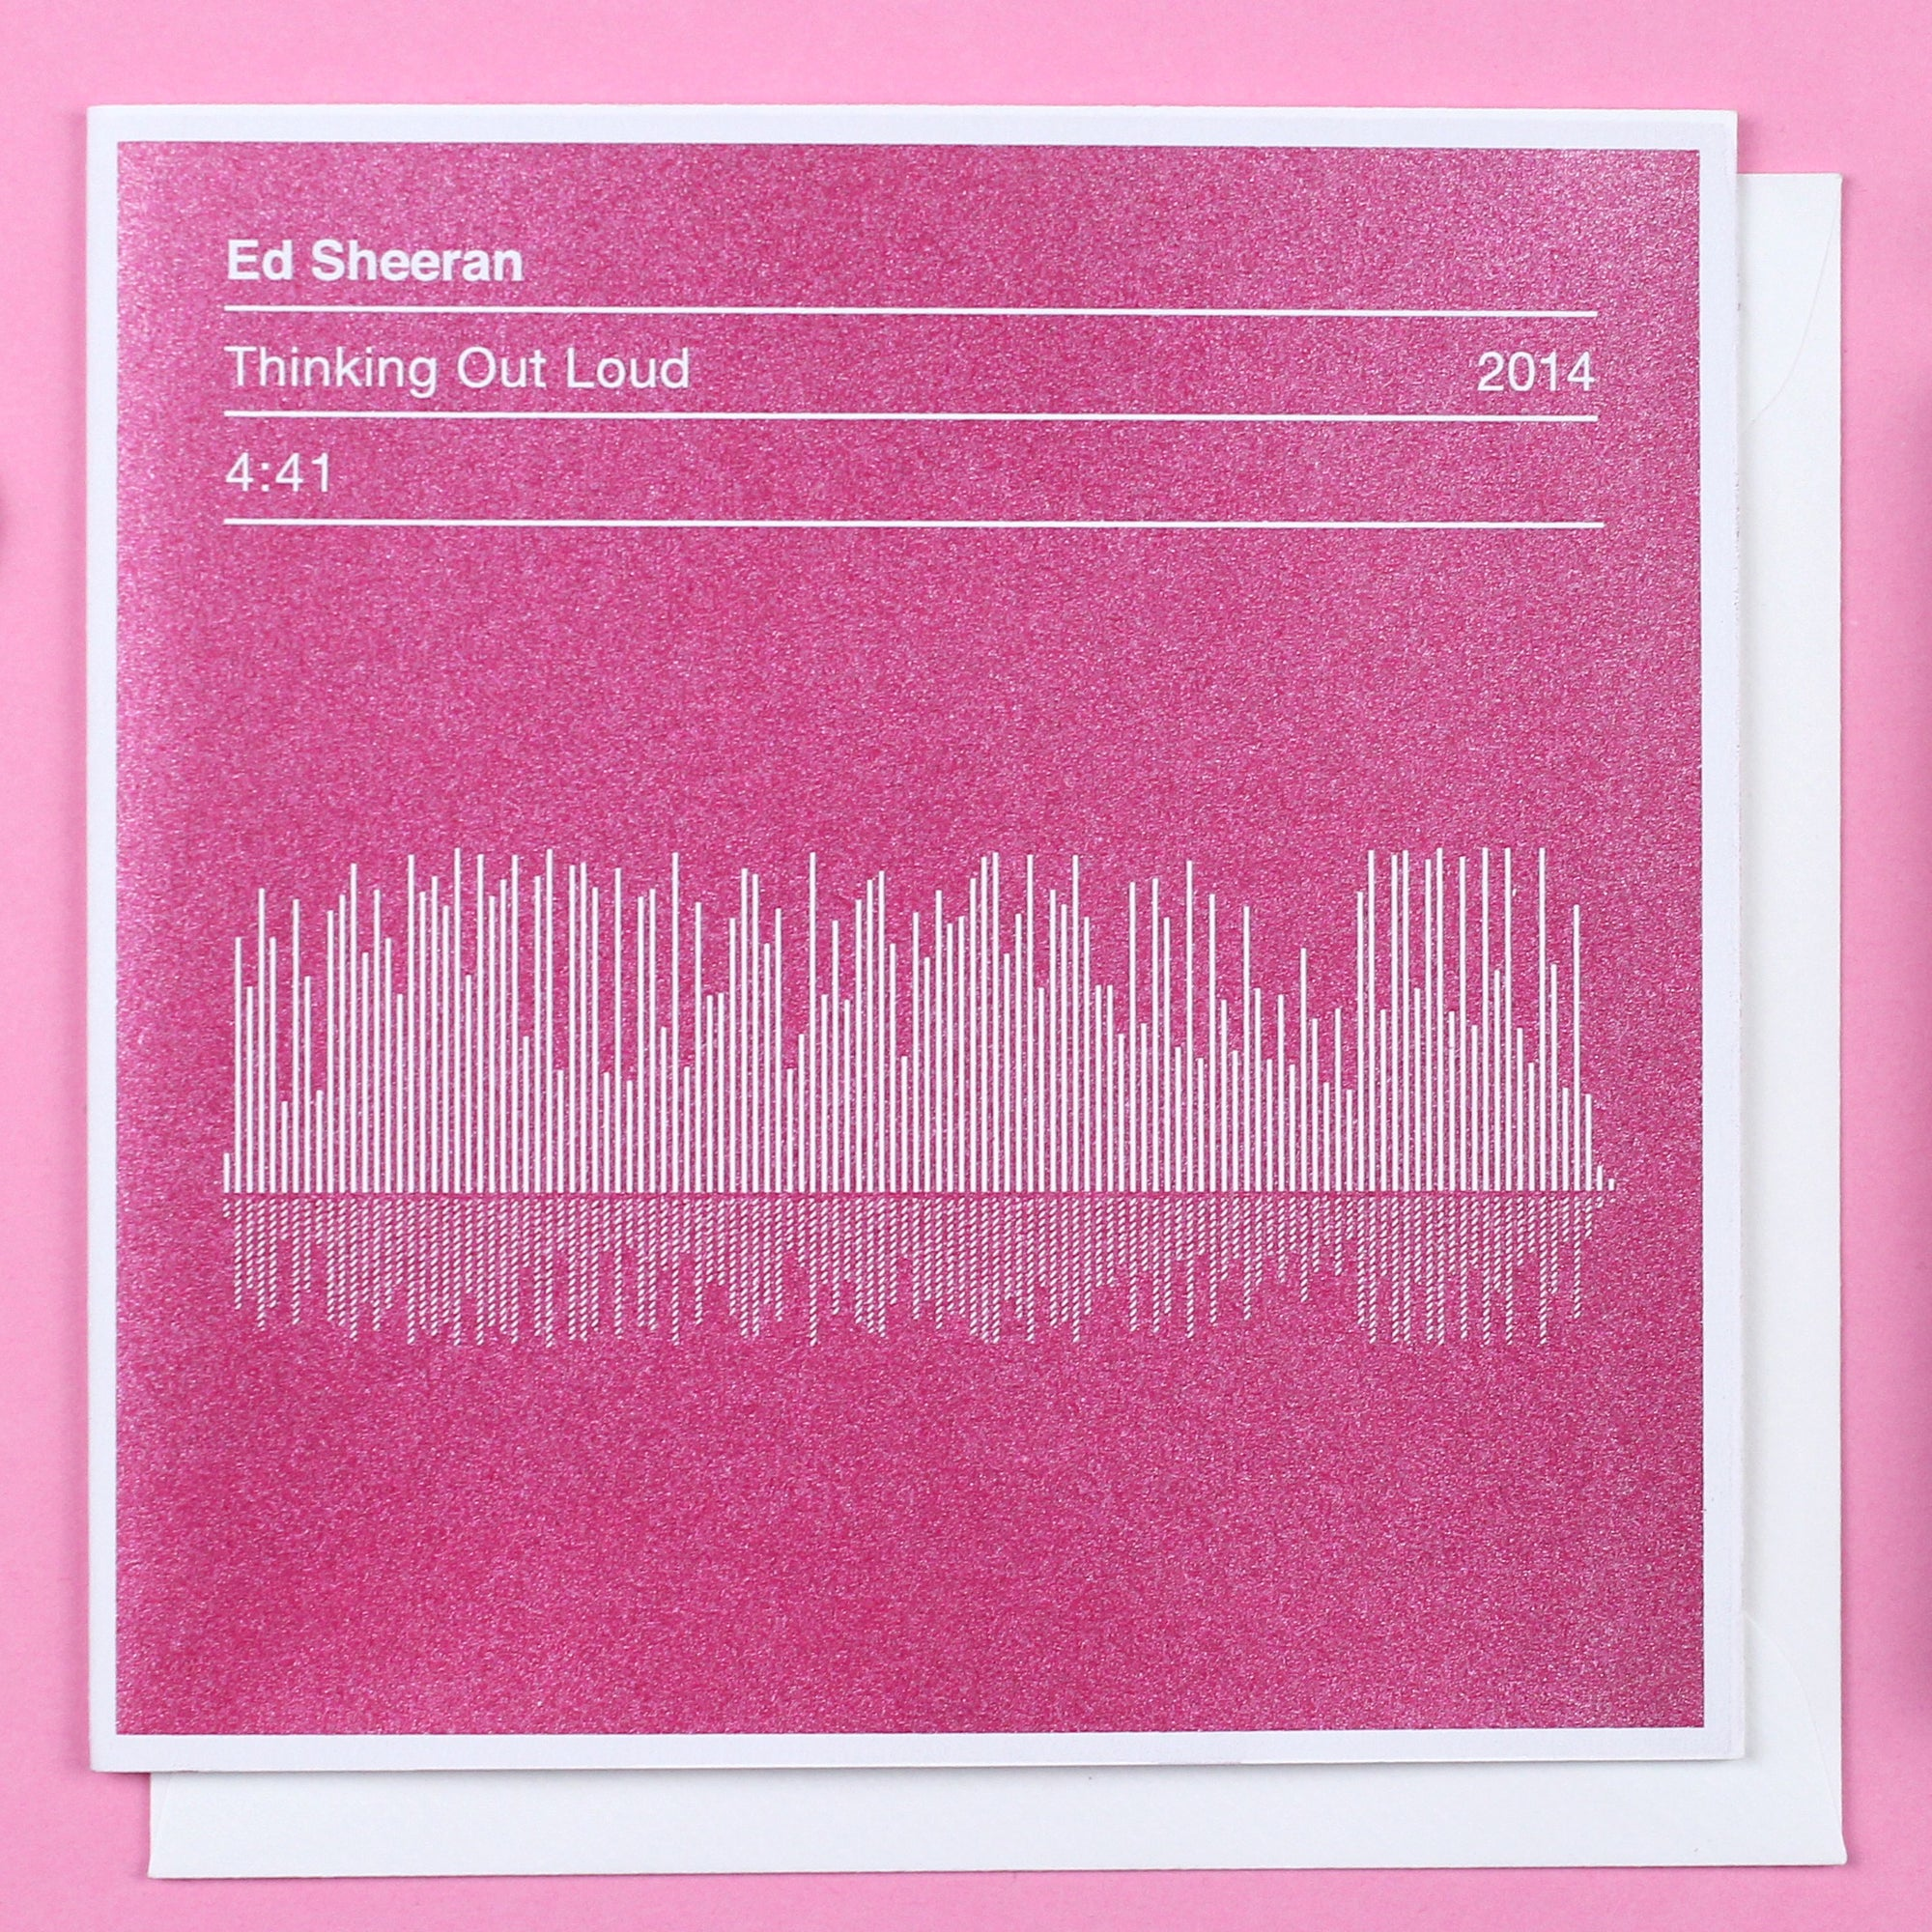 ed sheeran valentines card 'thinking out loud' song sound